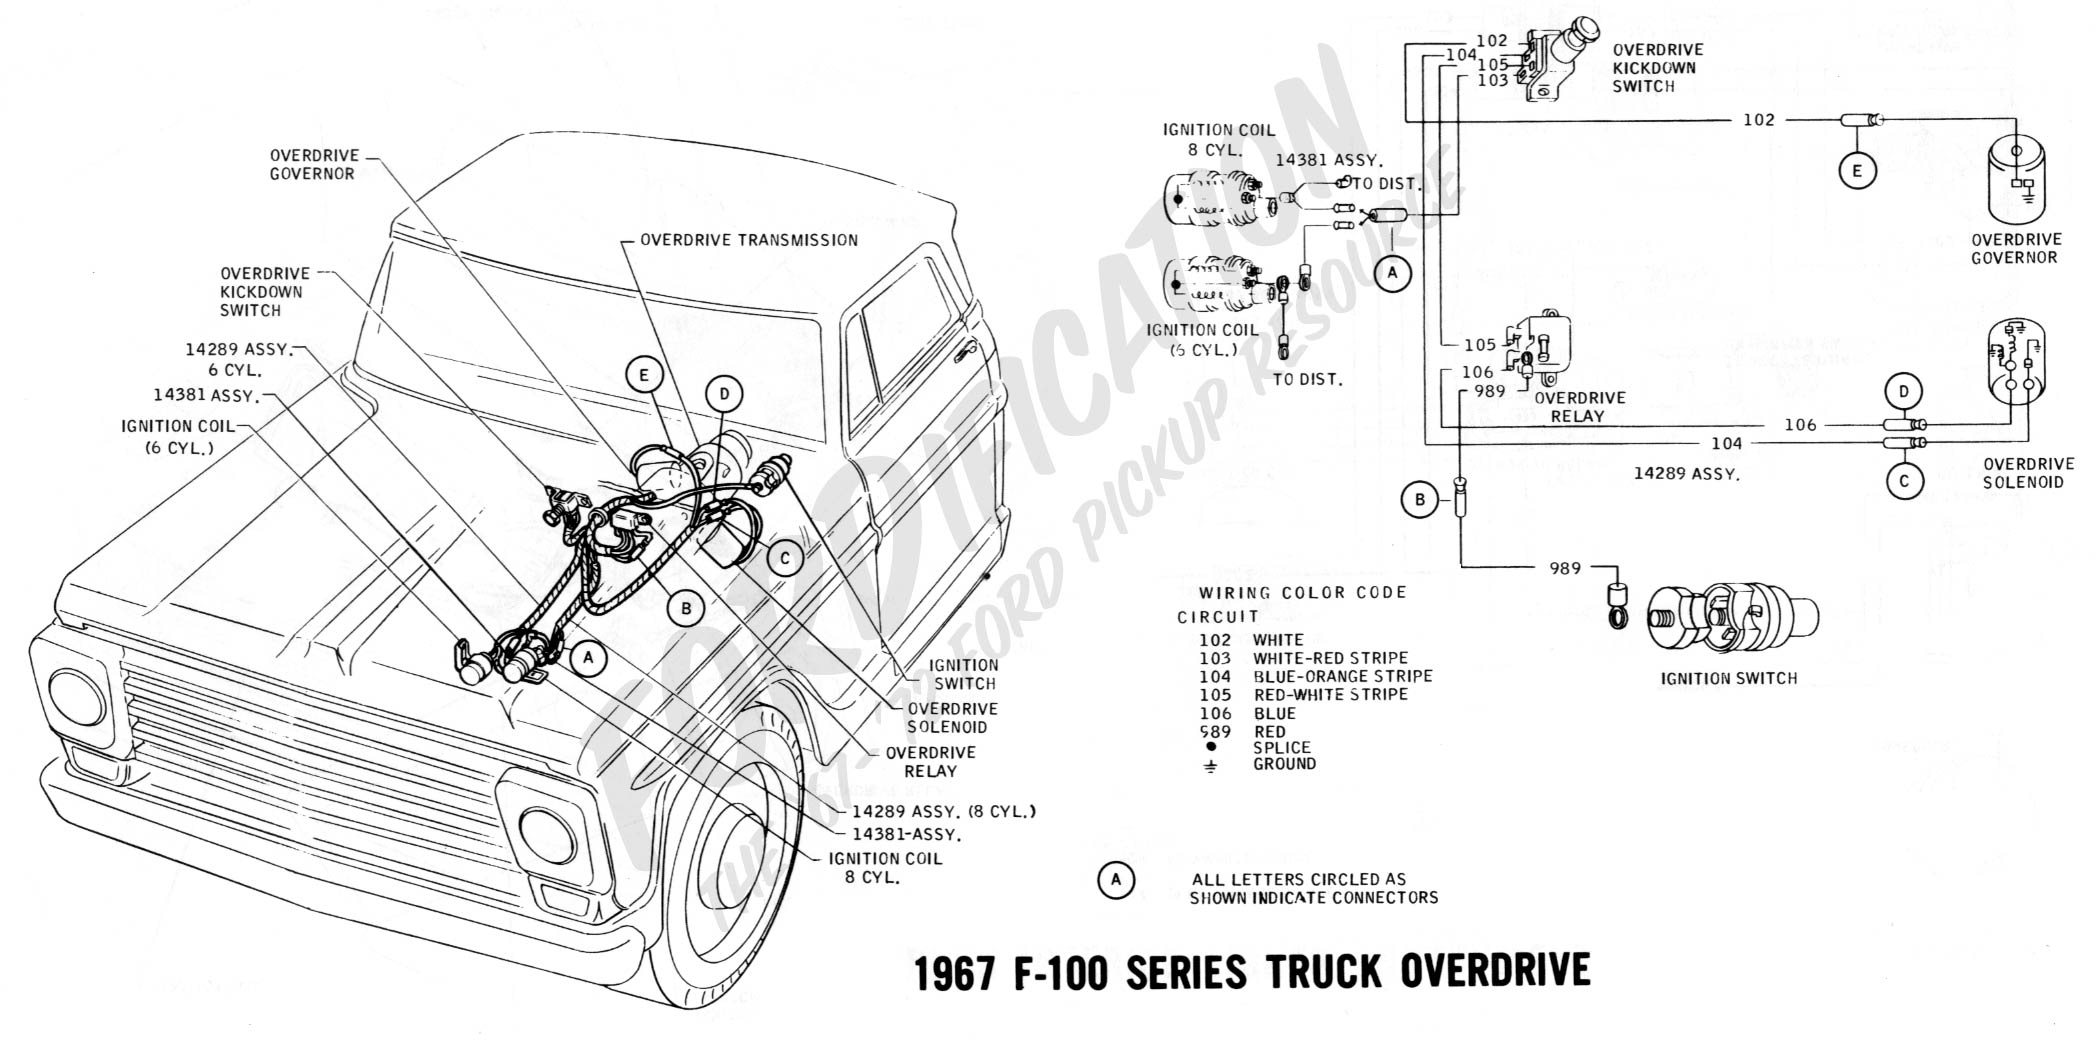 Ford Truck Technical Drawings And Schematics Section H Wiring 1991 E350 Fuse Box 1967 F 100 Series Overdrive